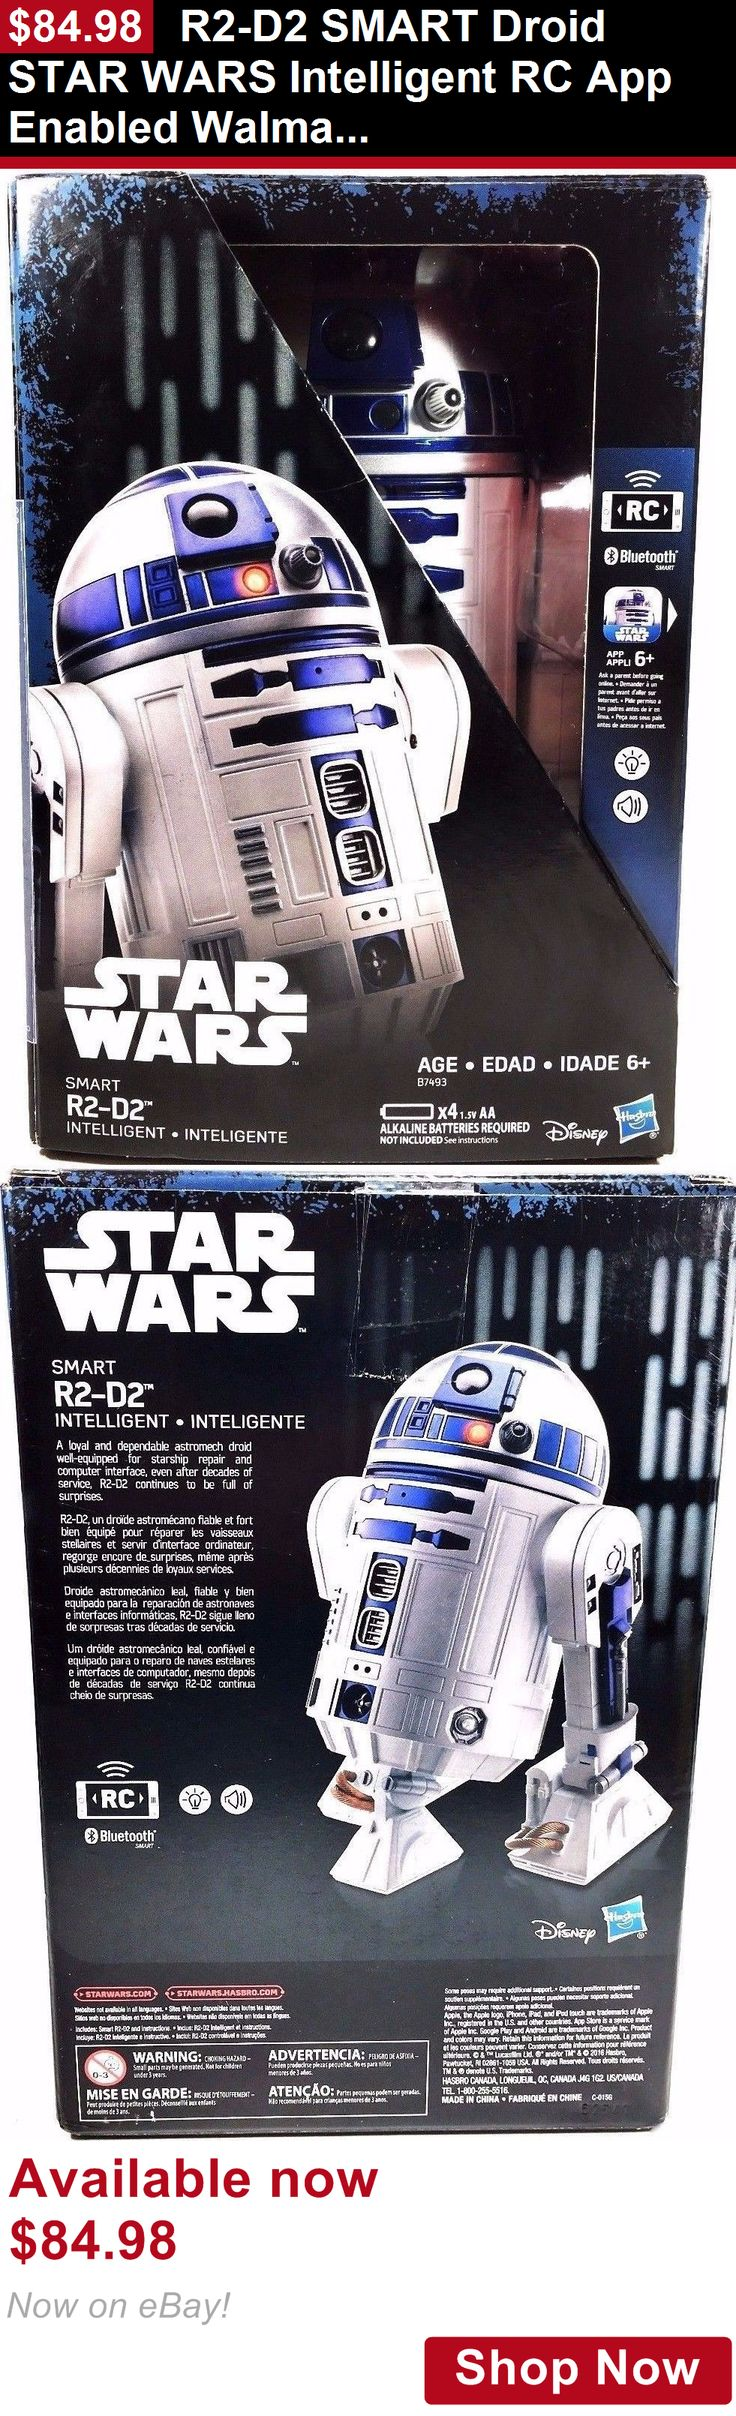 Telescopes: R2-D2 Smart Droid Star Wars Intelligent Rc App Enabled Walmart Exclusive New BUY IT NOW ONLY: $84.98